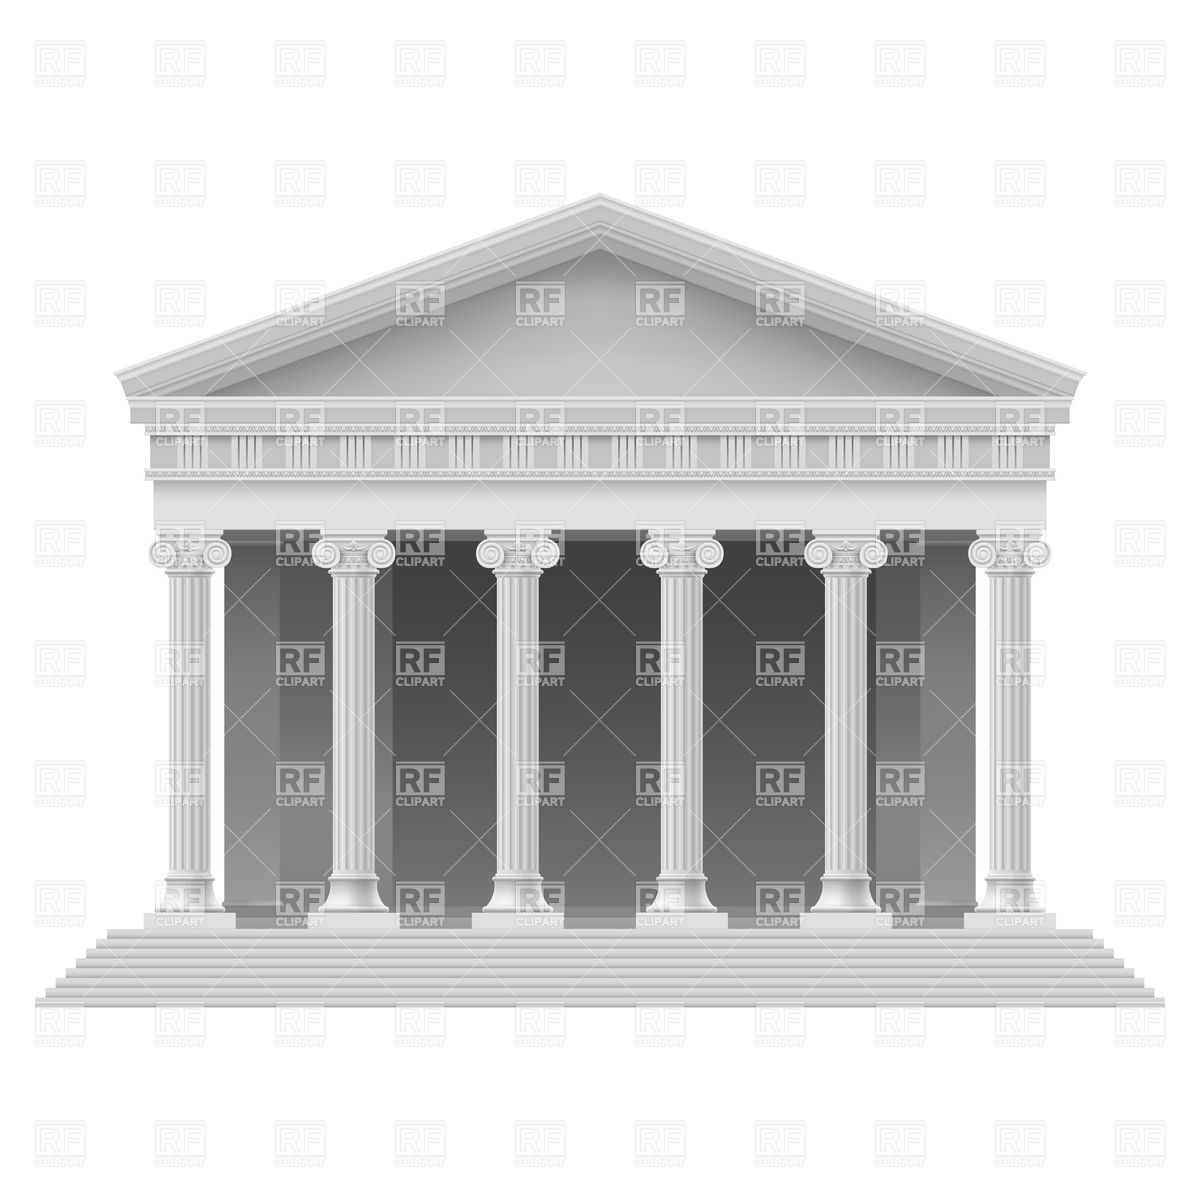 Old temple clipart #10